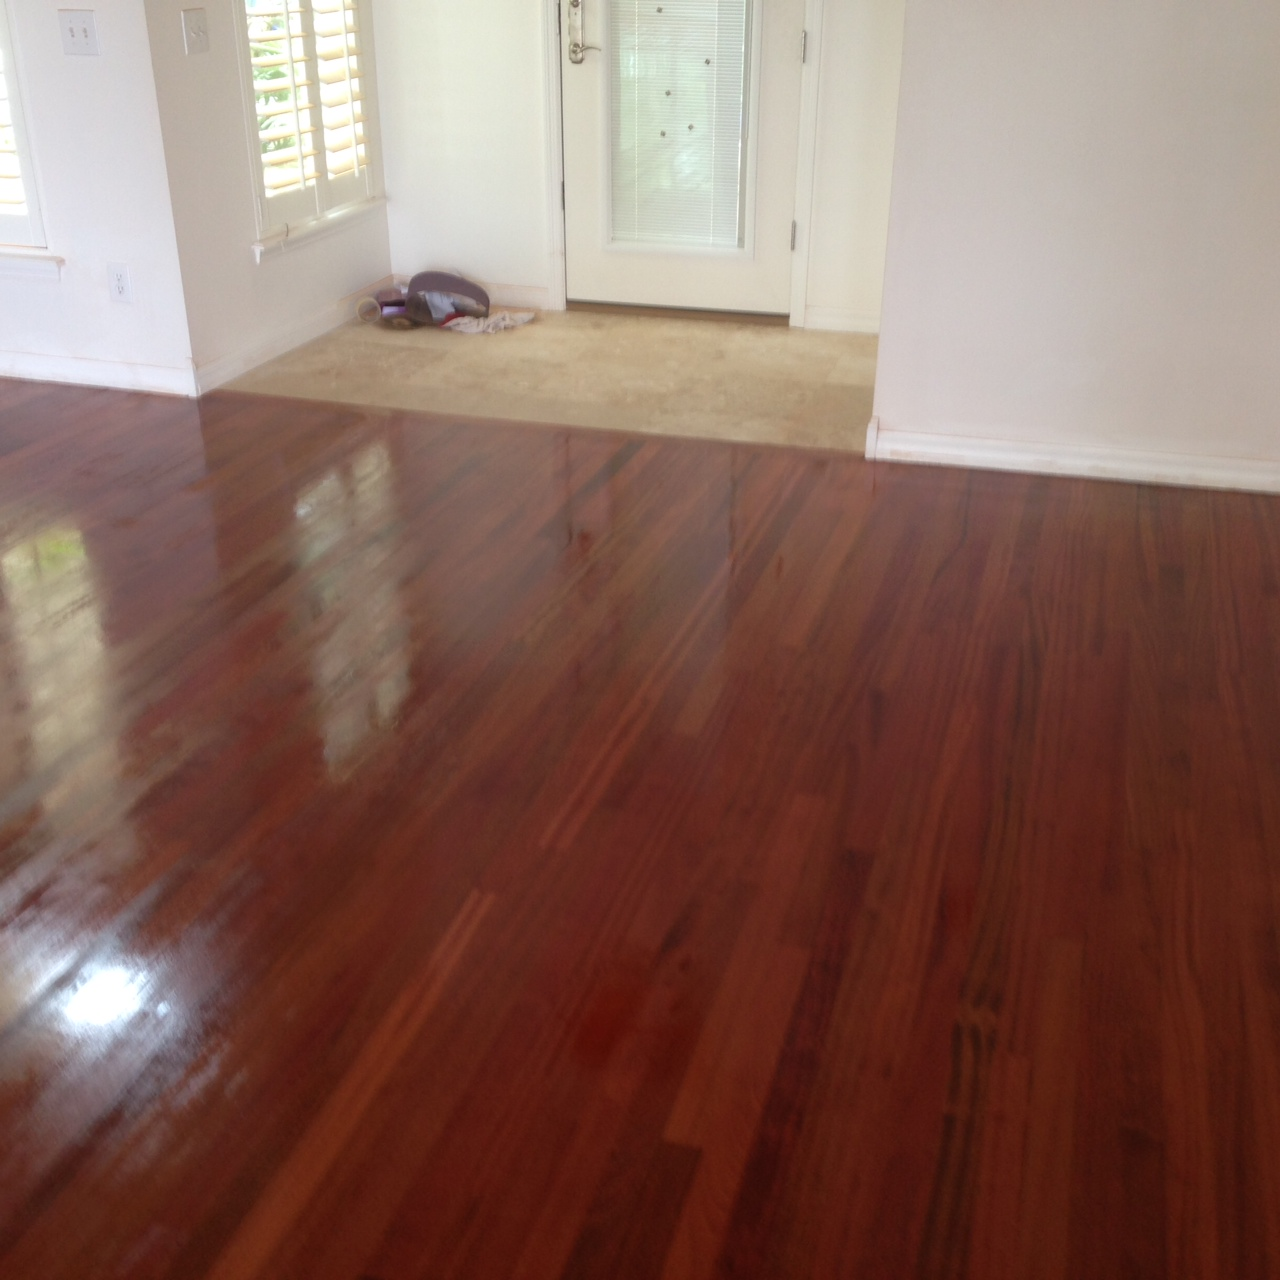 Brazilian cherry wood archives dan 39 s floor store for Bella hardwood flooring prices